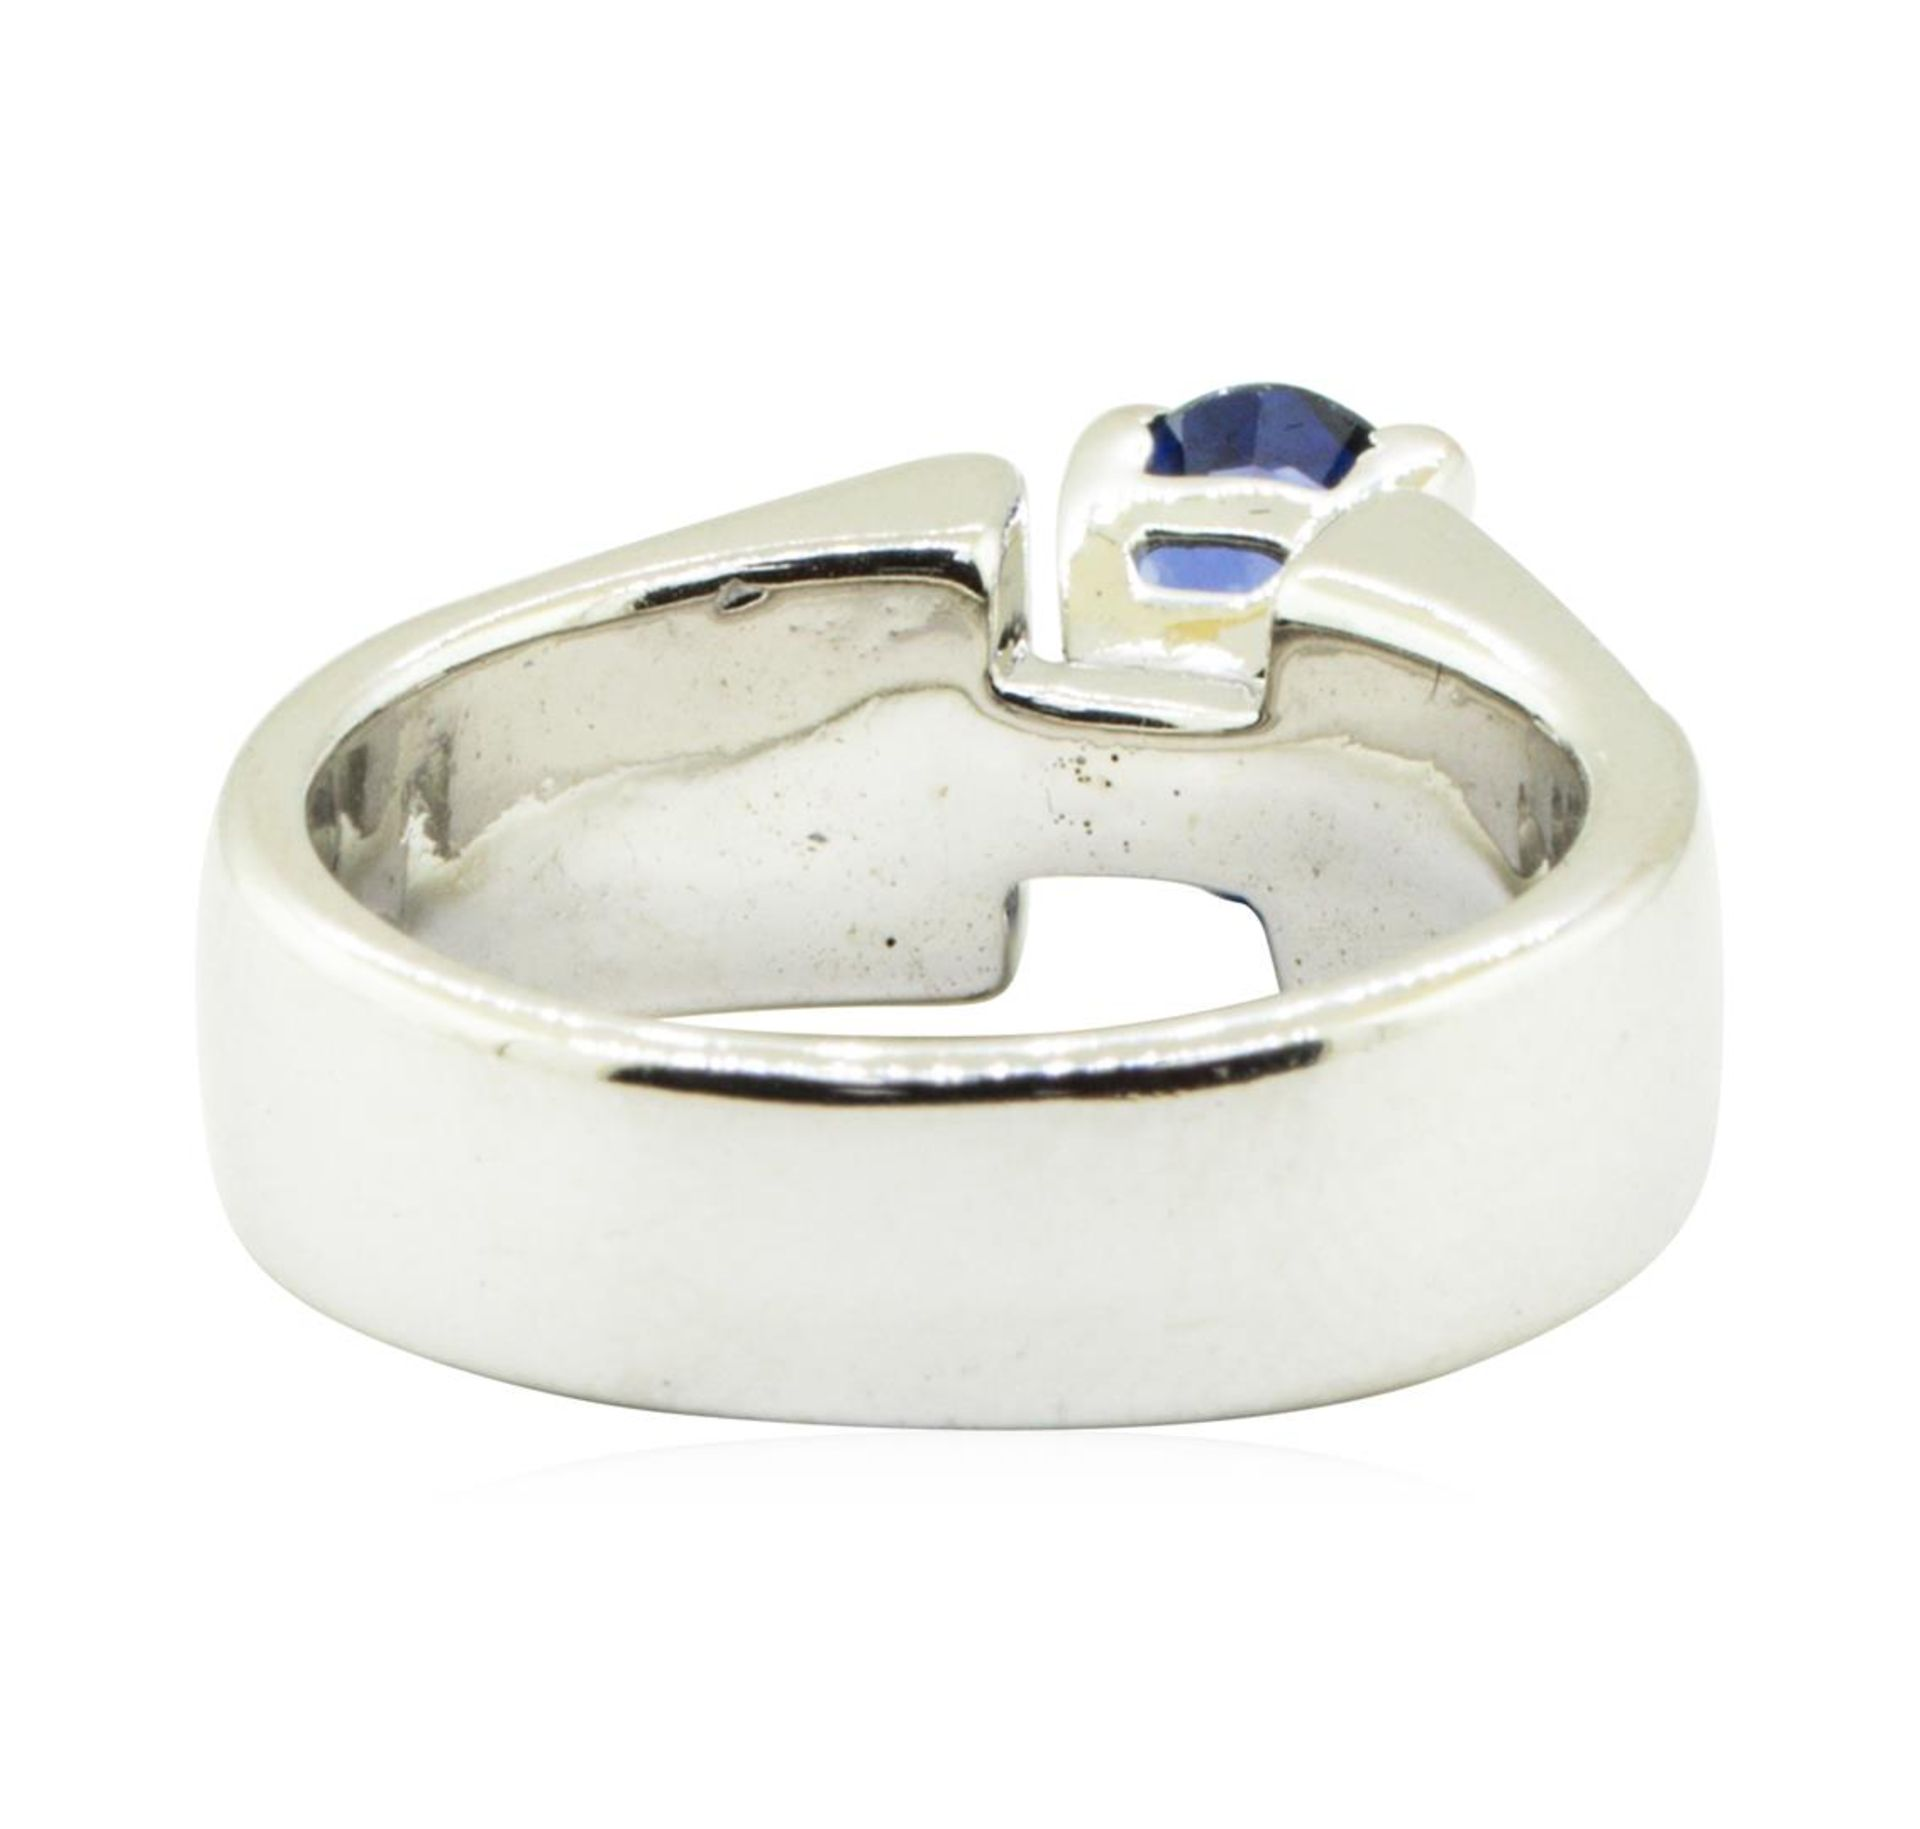 2.17 ctw Oval Brilliant Blue Sapphire And Diamond Ring - 14KT White Gold - Image 3 of 5